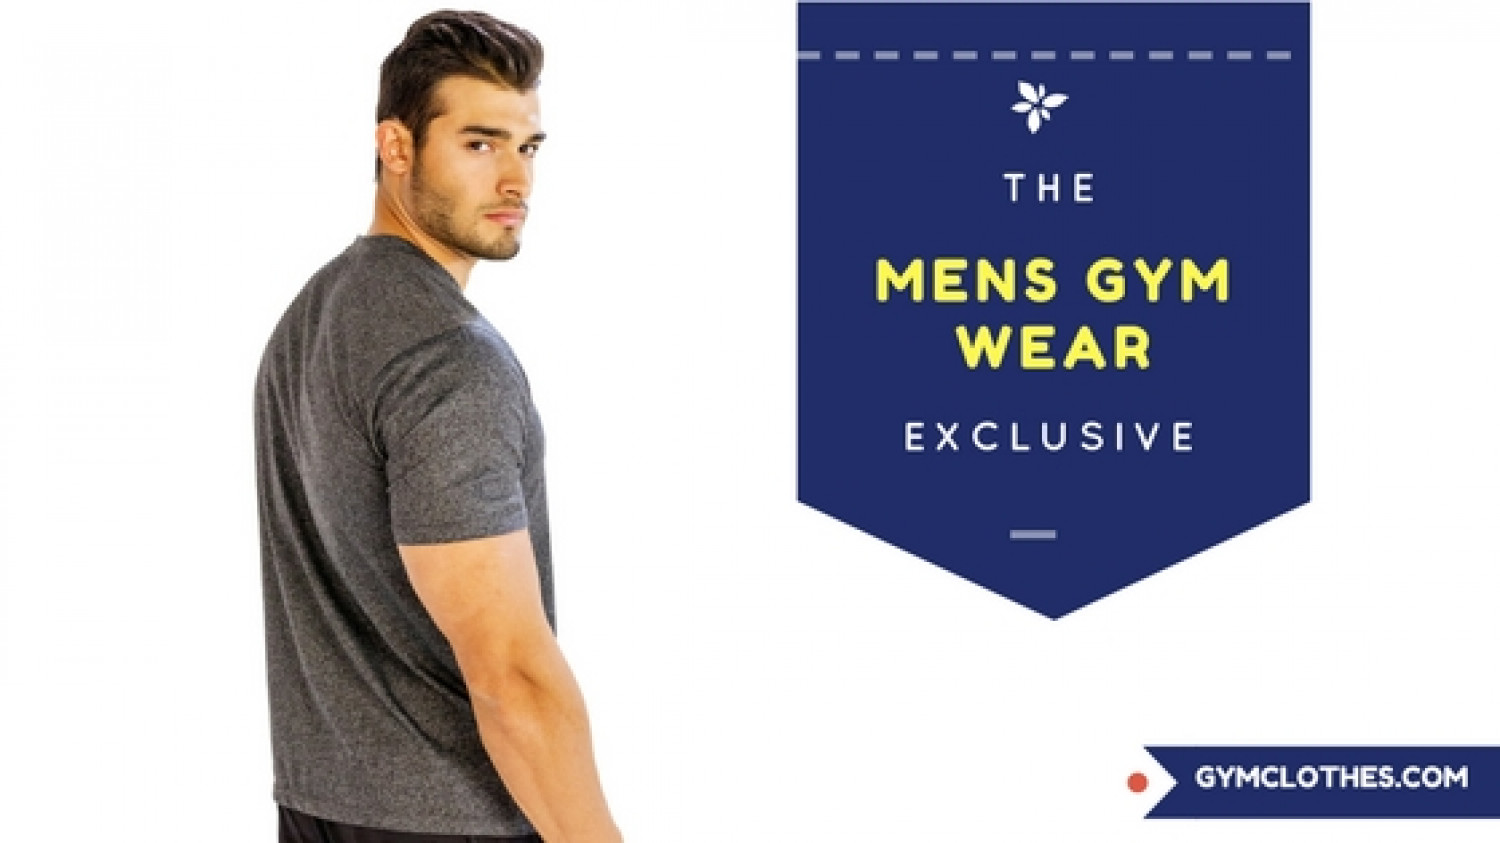 Best Purchase Of Gym Clothes Mens From Online Store Gym Clothes Infographic